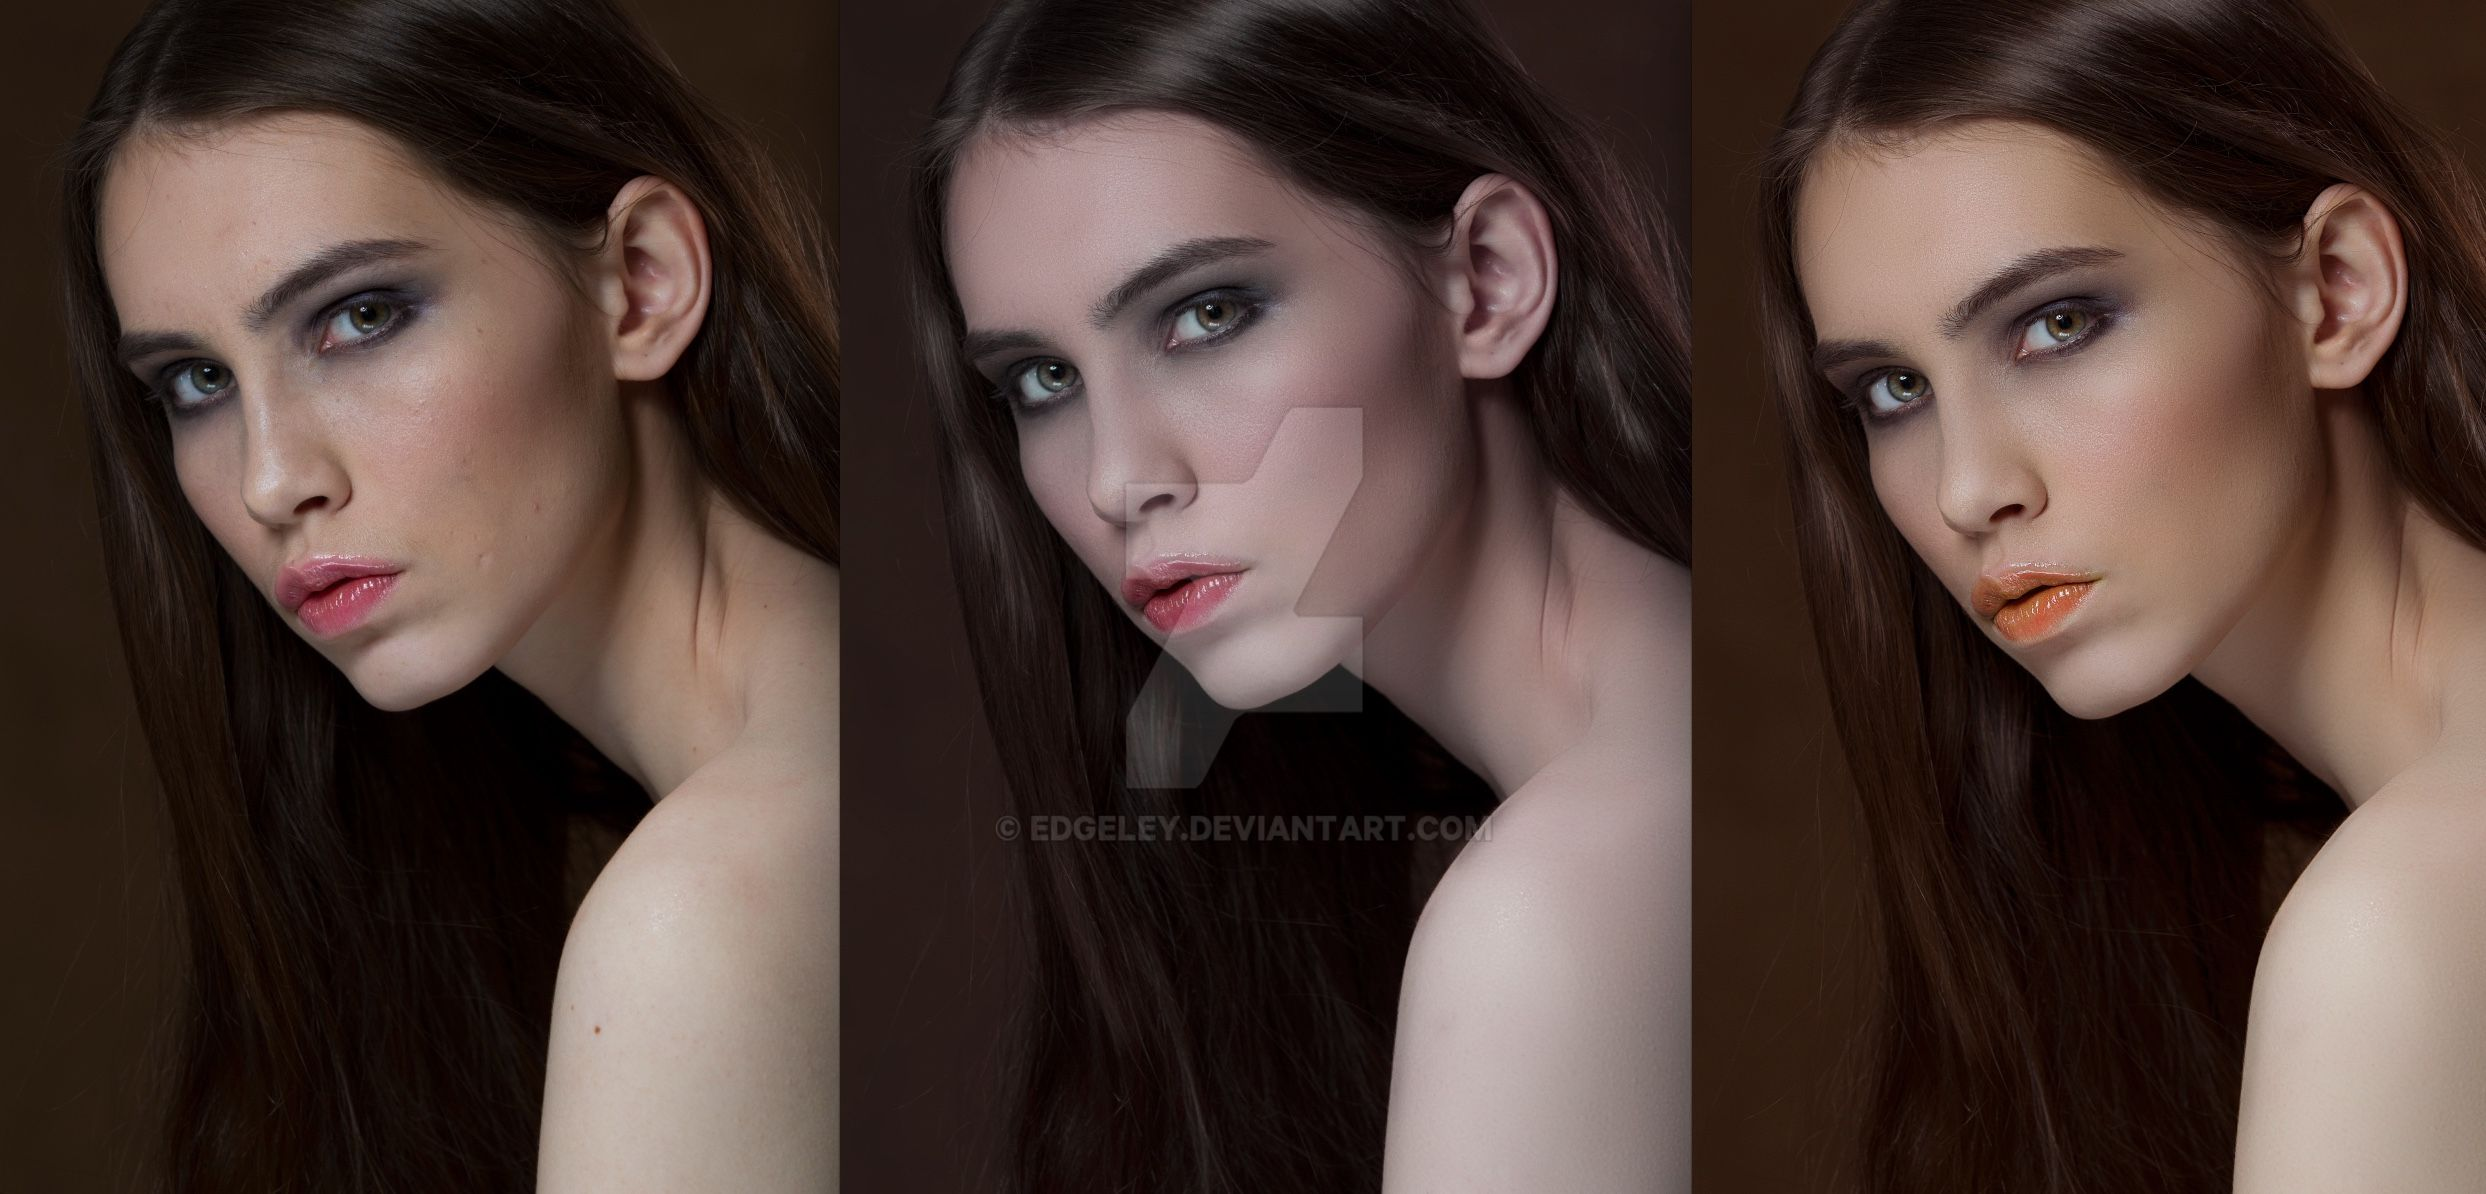 Retouch 2 by Edgeley